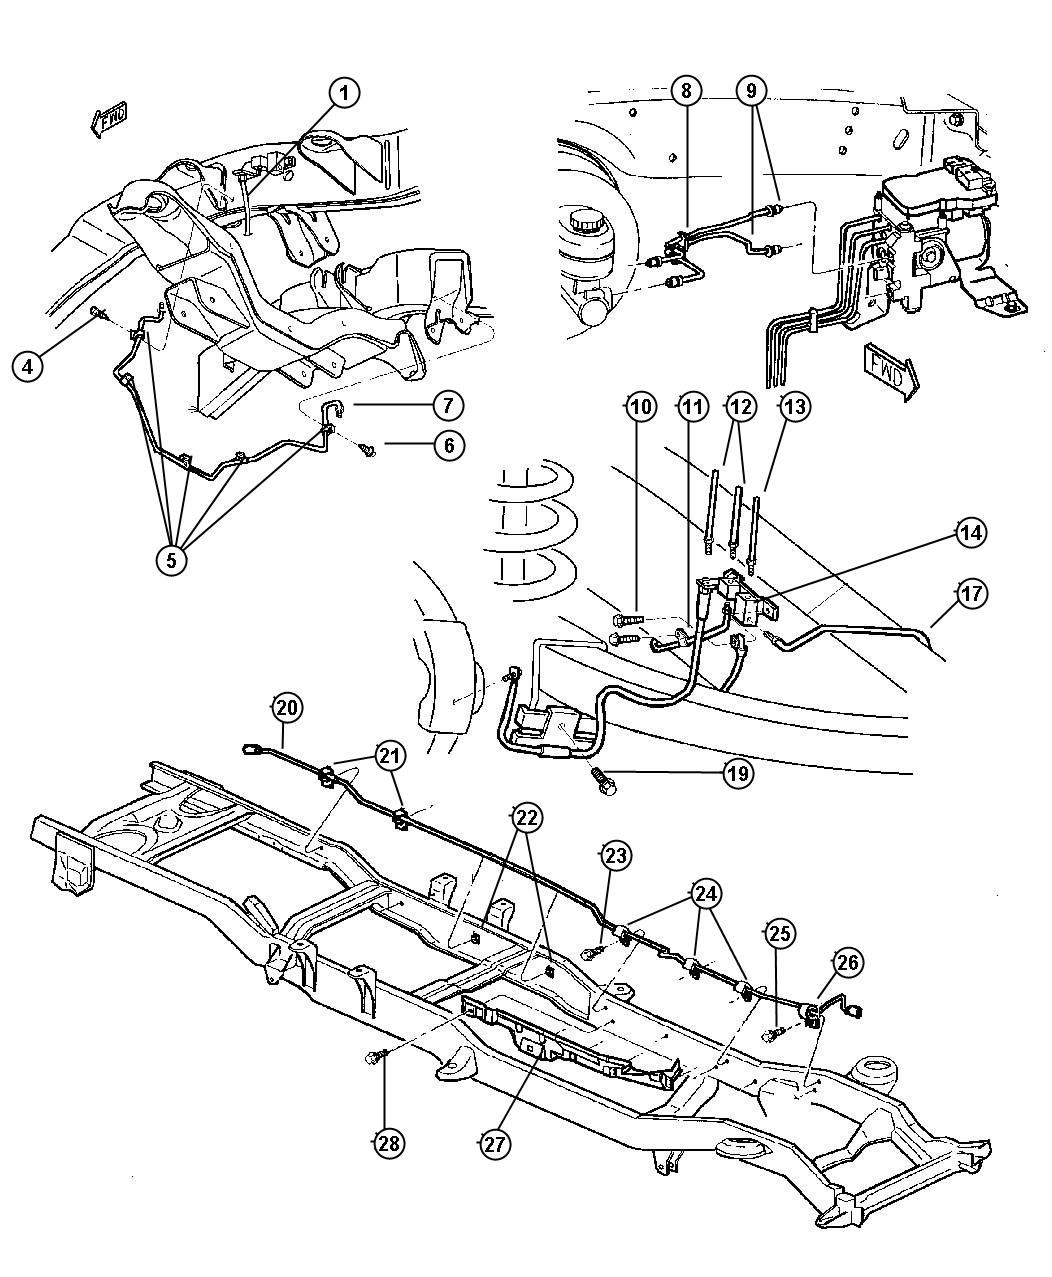 dodge 2500 frame diagram  dodge  free engine image for